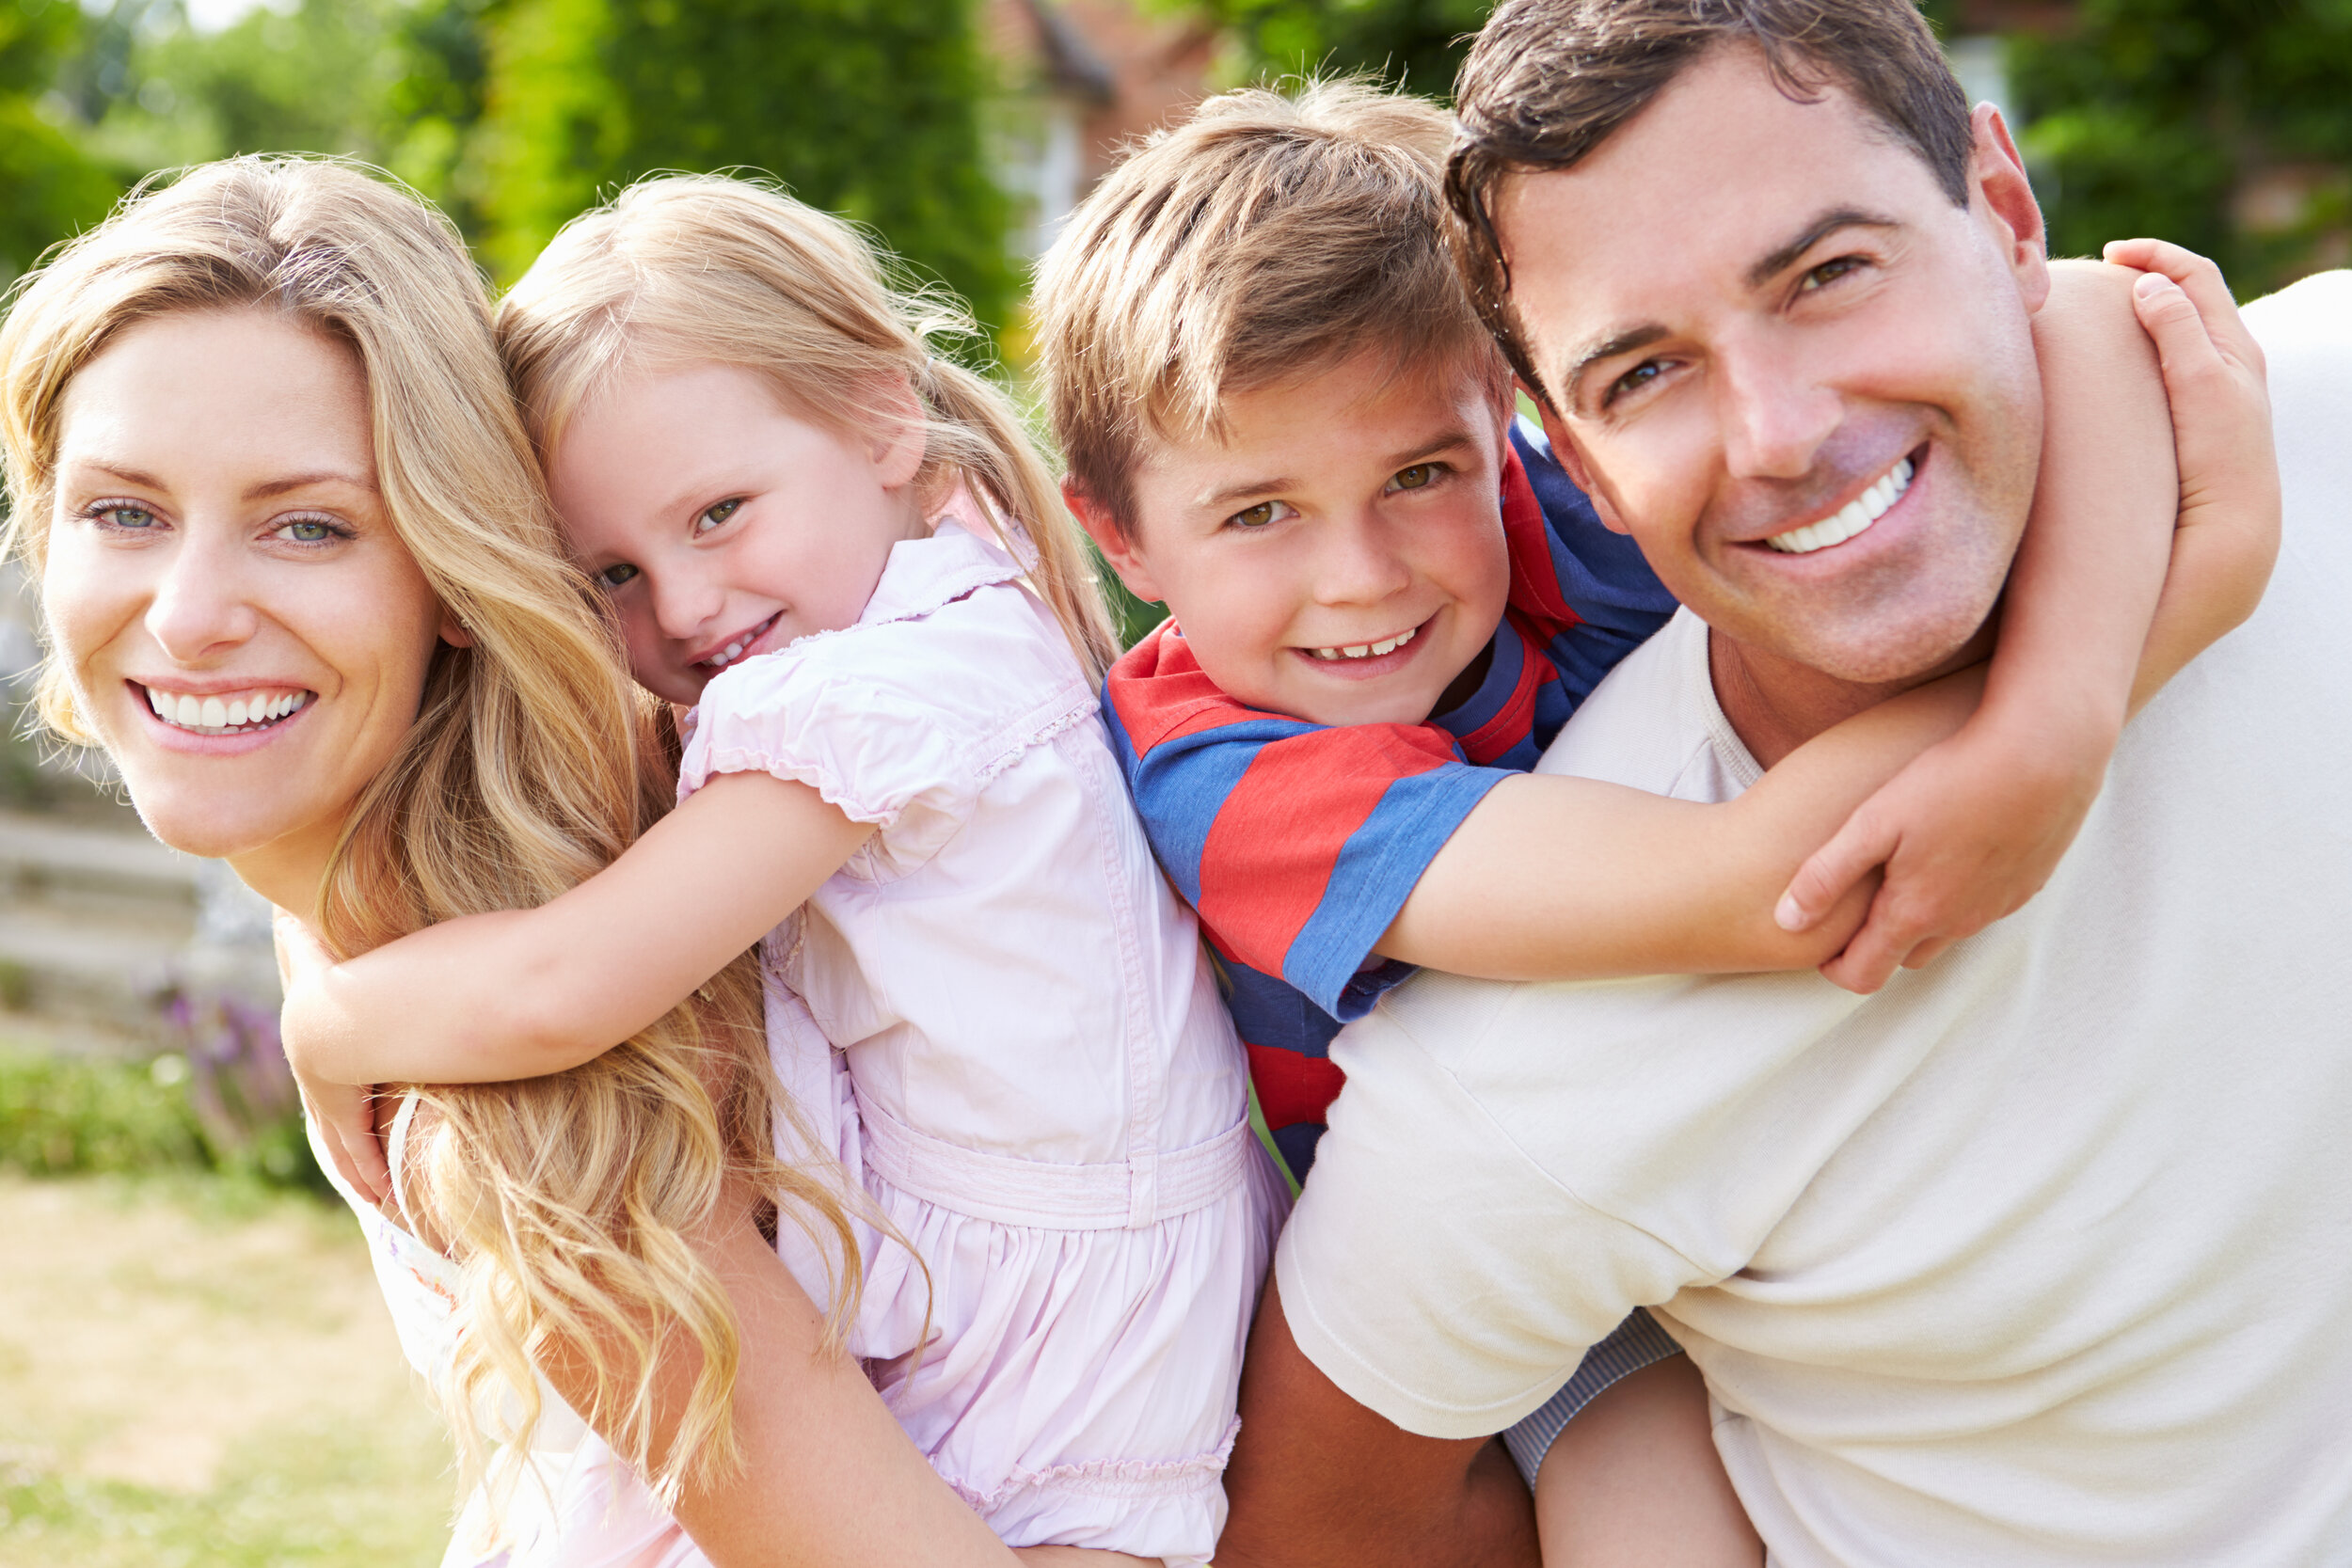 Home Page Happy Family shutterstock_156648317.jpg